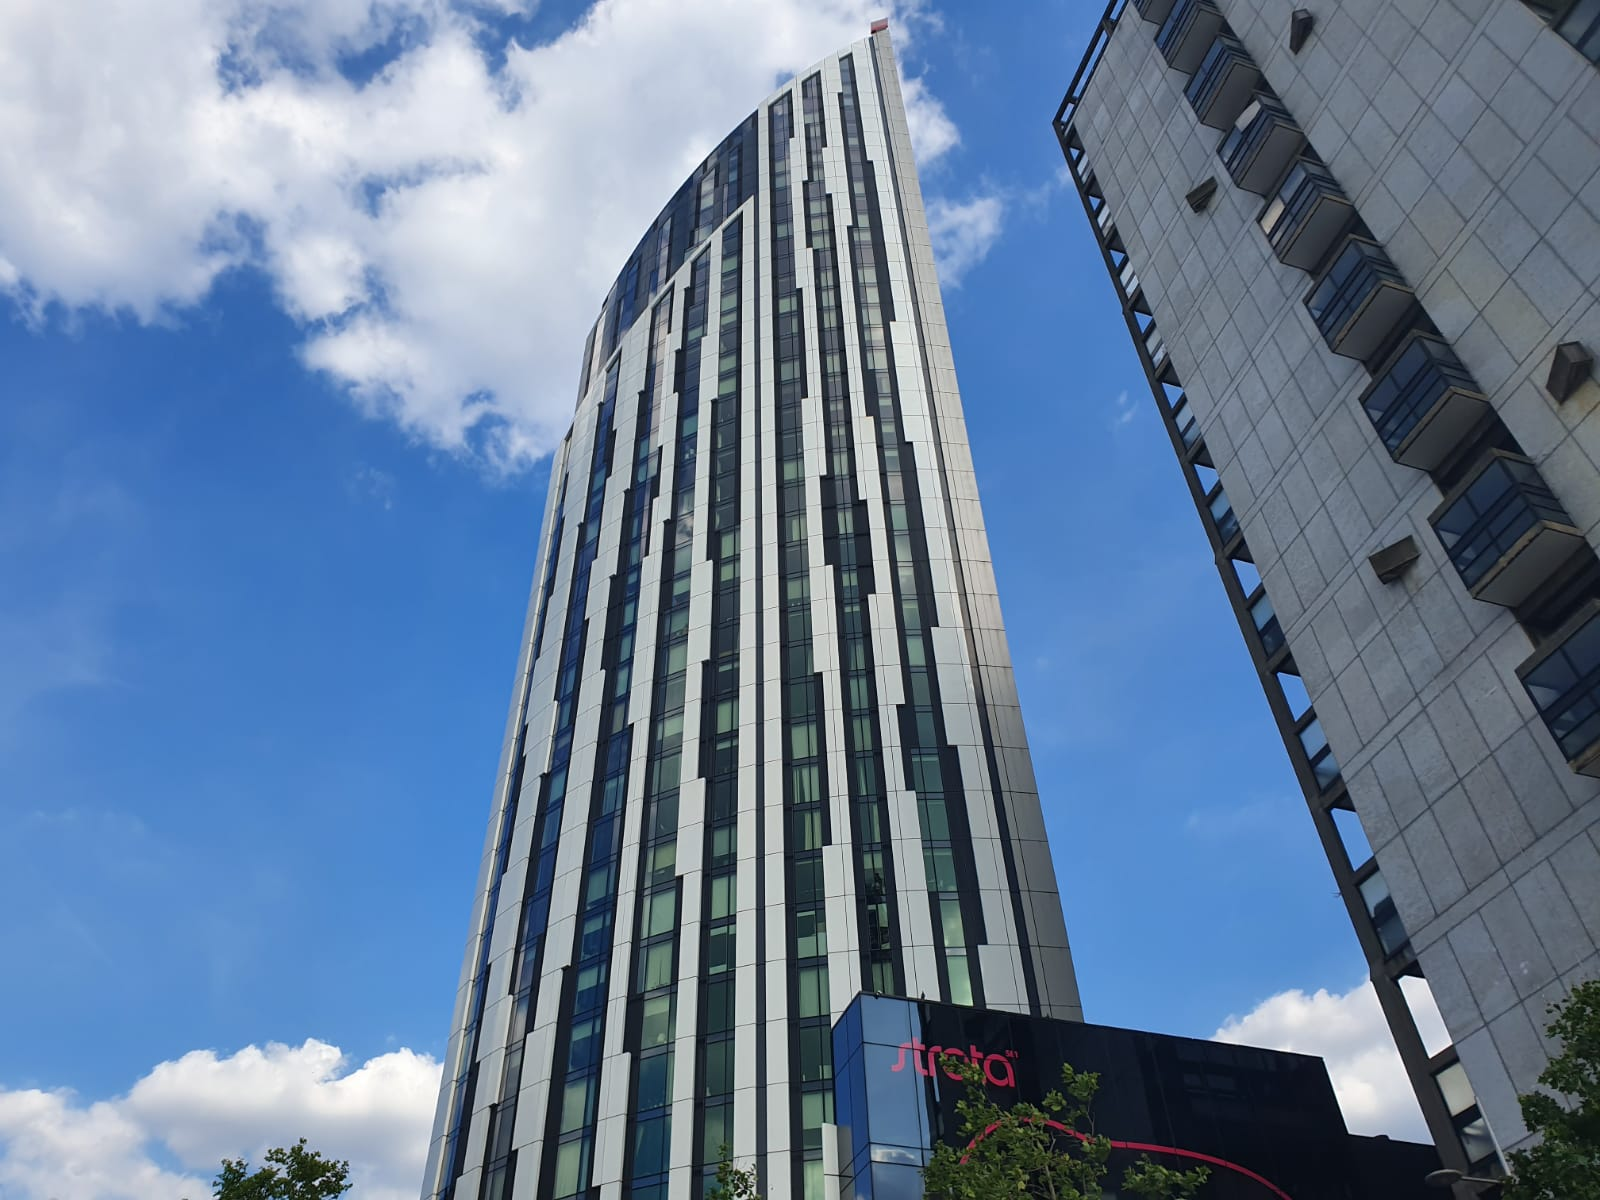 New flats in Elephant and Castle